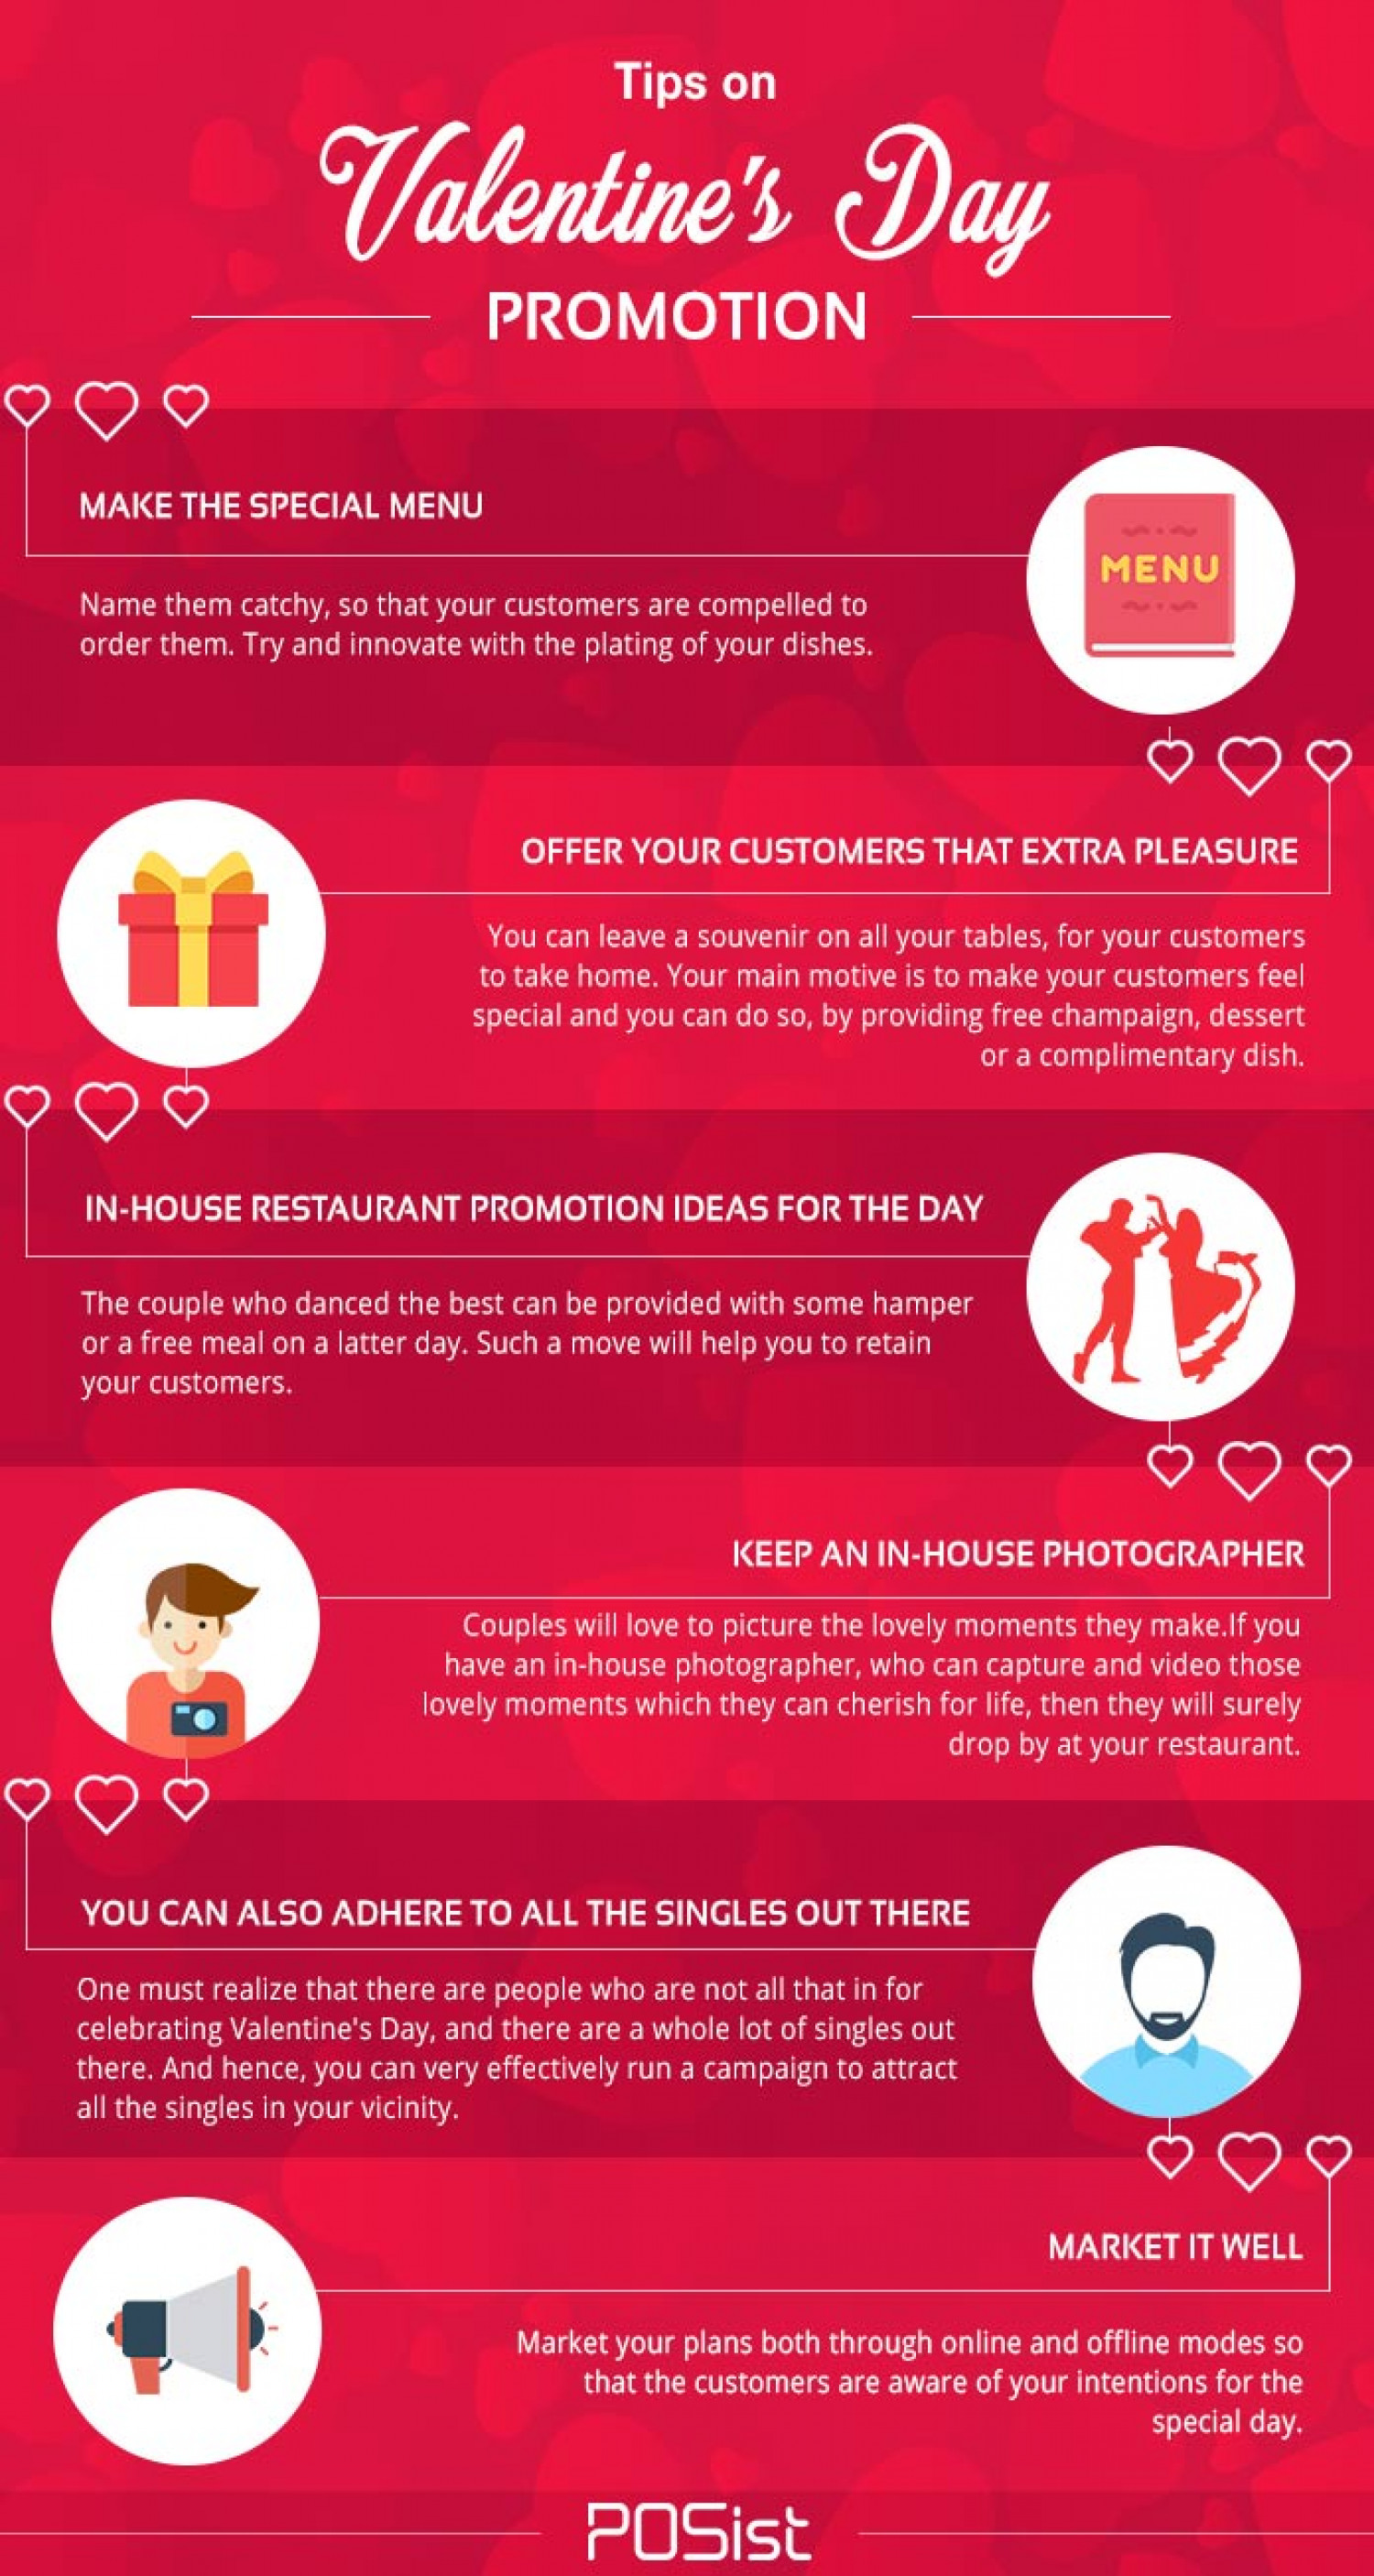 Restaurant Promotion Ideas for Valentine's Day Infographic